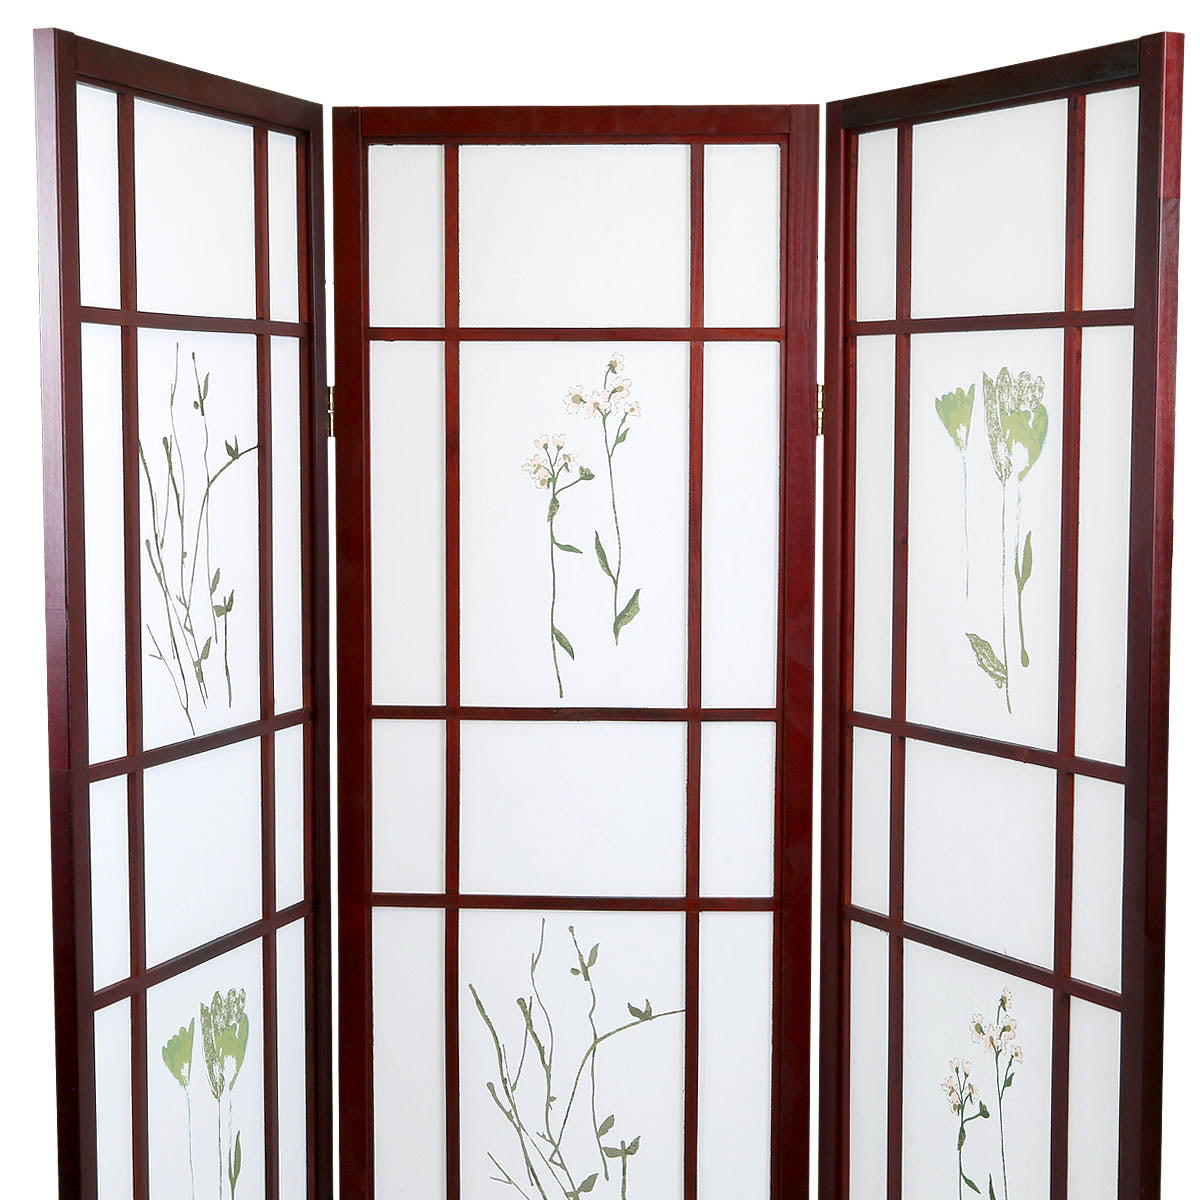 3 Panels Japanese Style Oriental Folding Room Divider Screen Hardwood Shoji Screen Room Separator Partition Wall Small Flowered Cherry